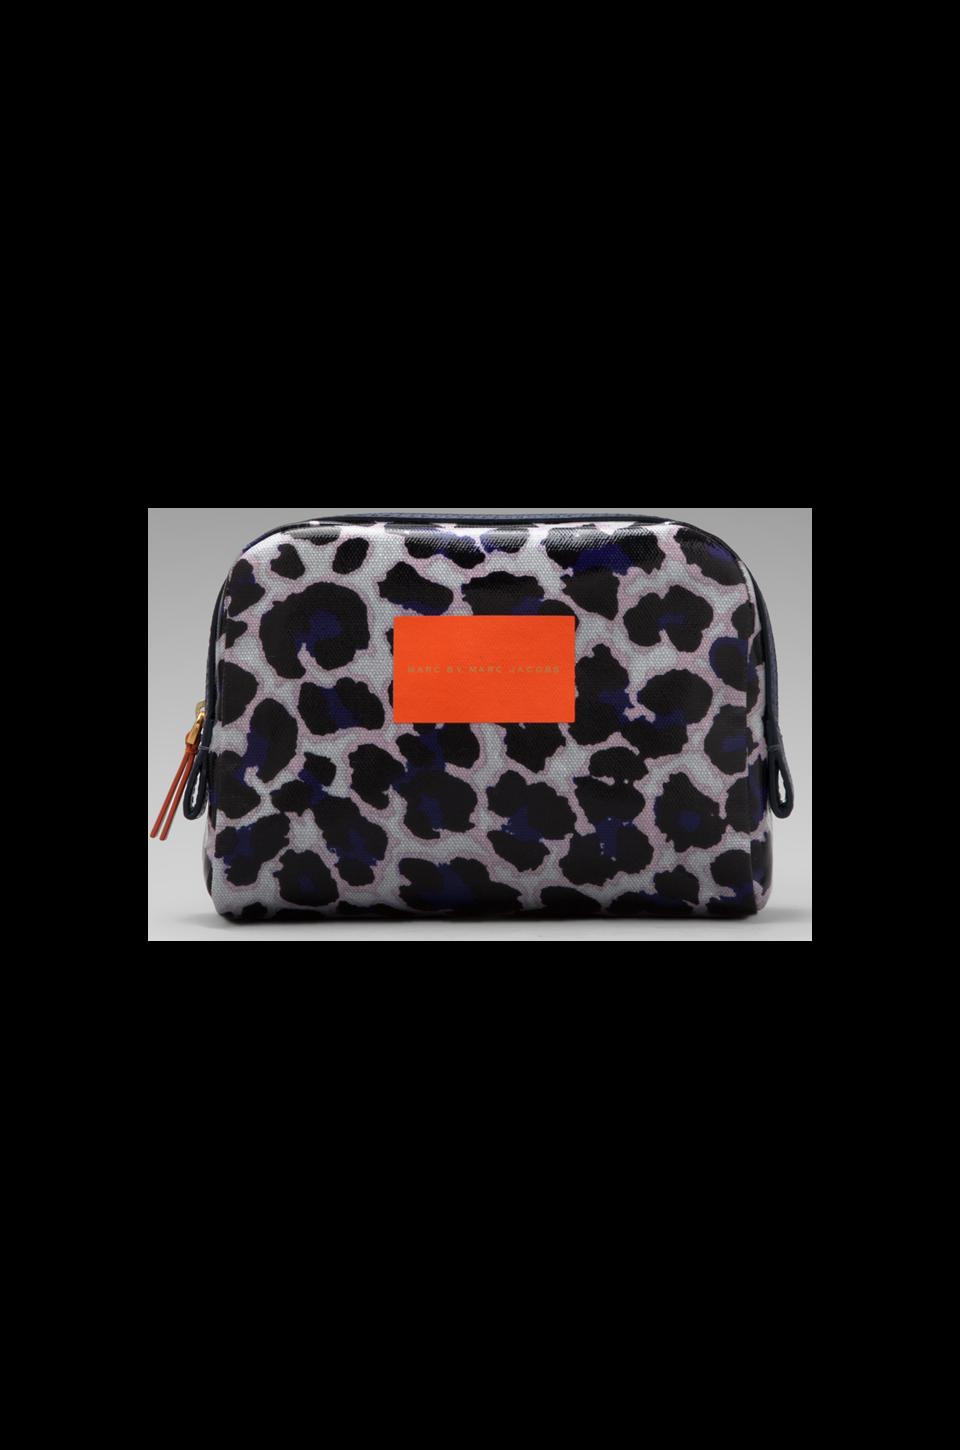 Marc by Marc Jacobs Coated Canvas Large Cosmetic Pouch in Royal Purple Multi